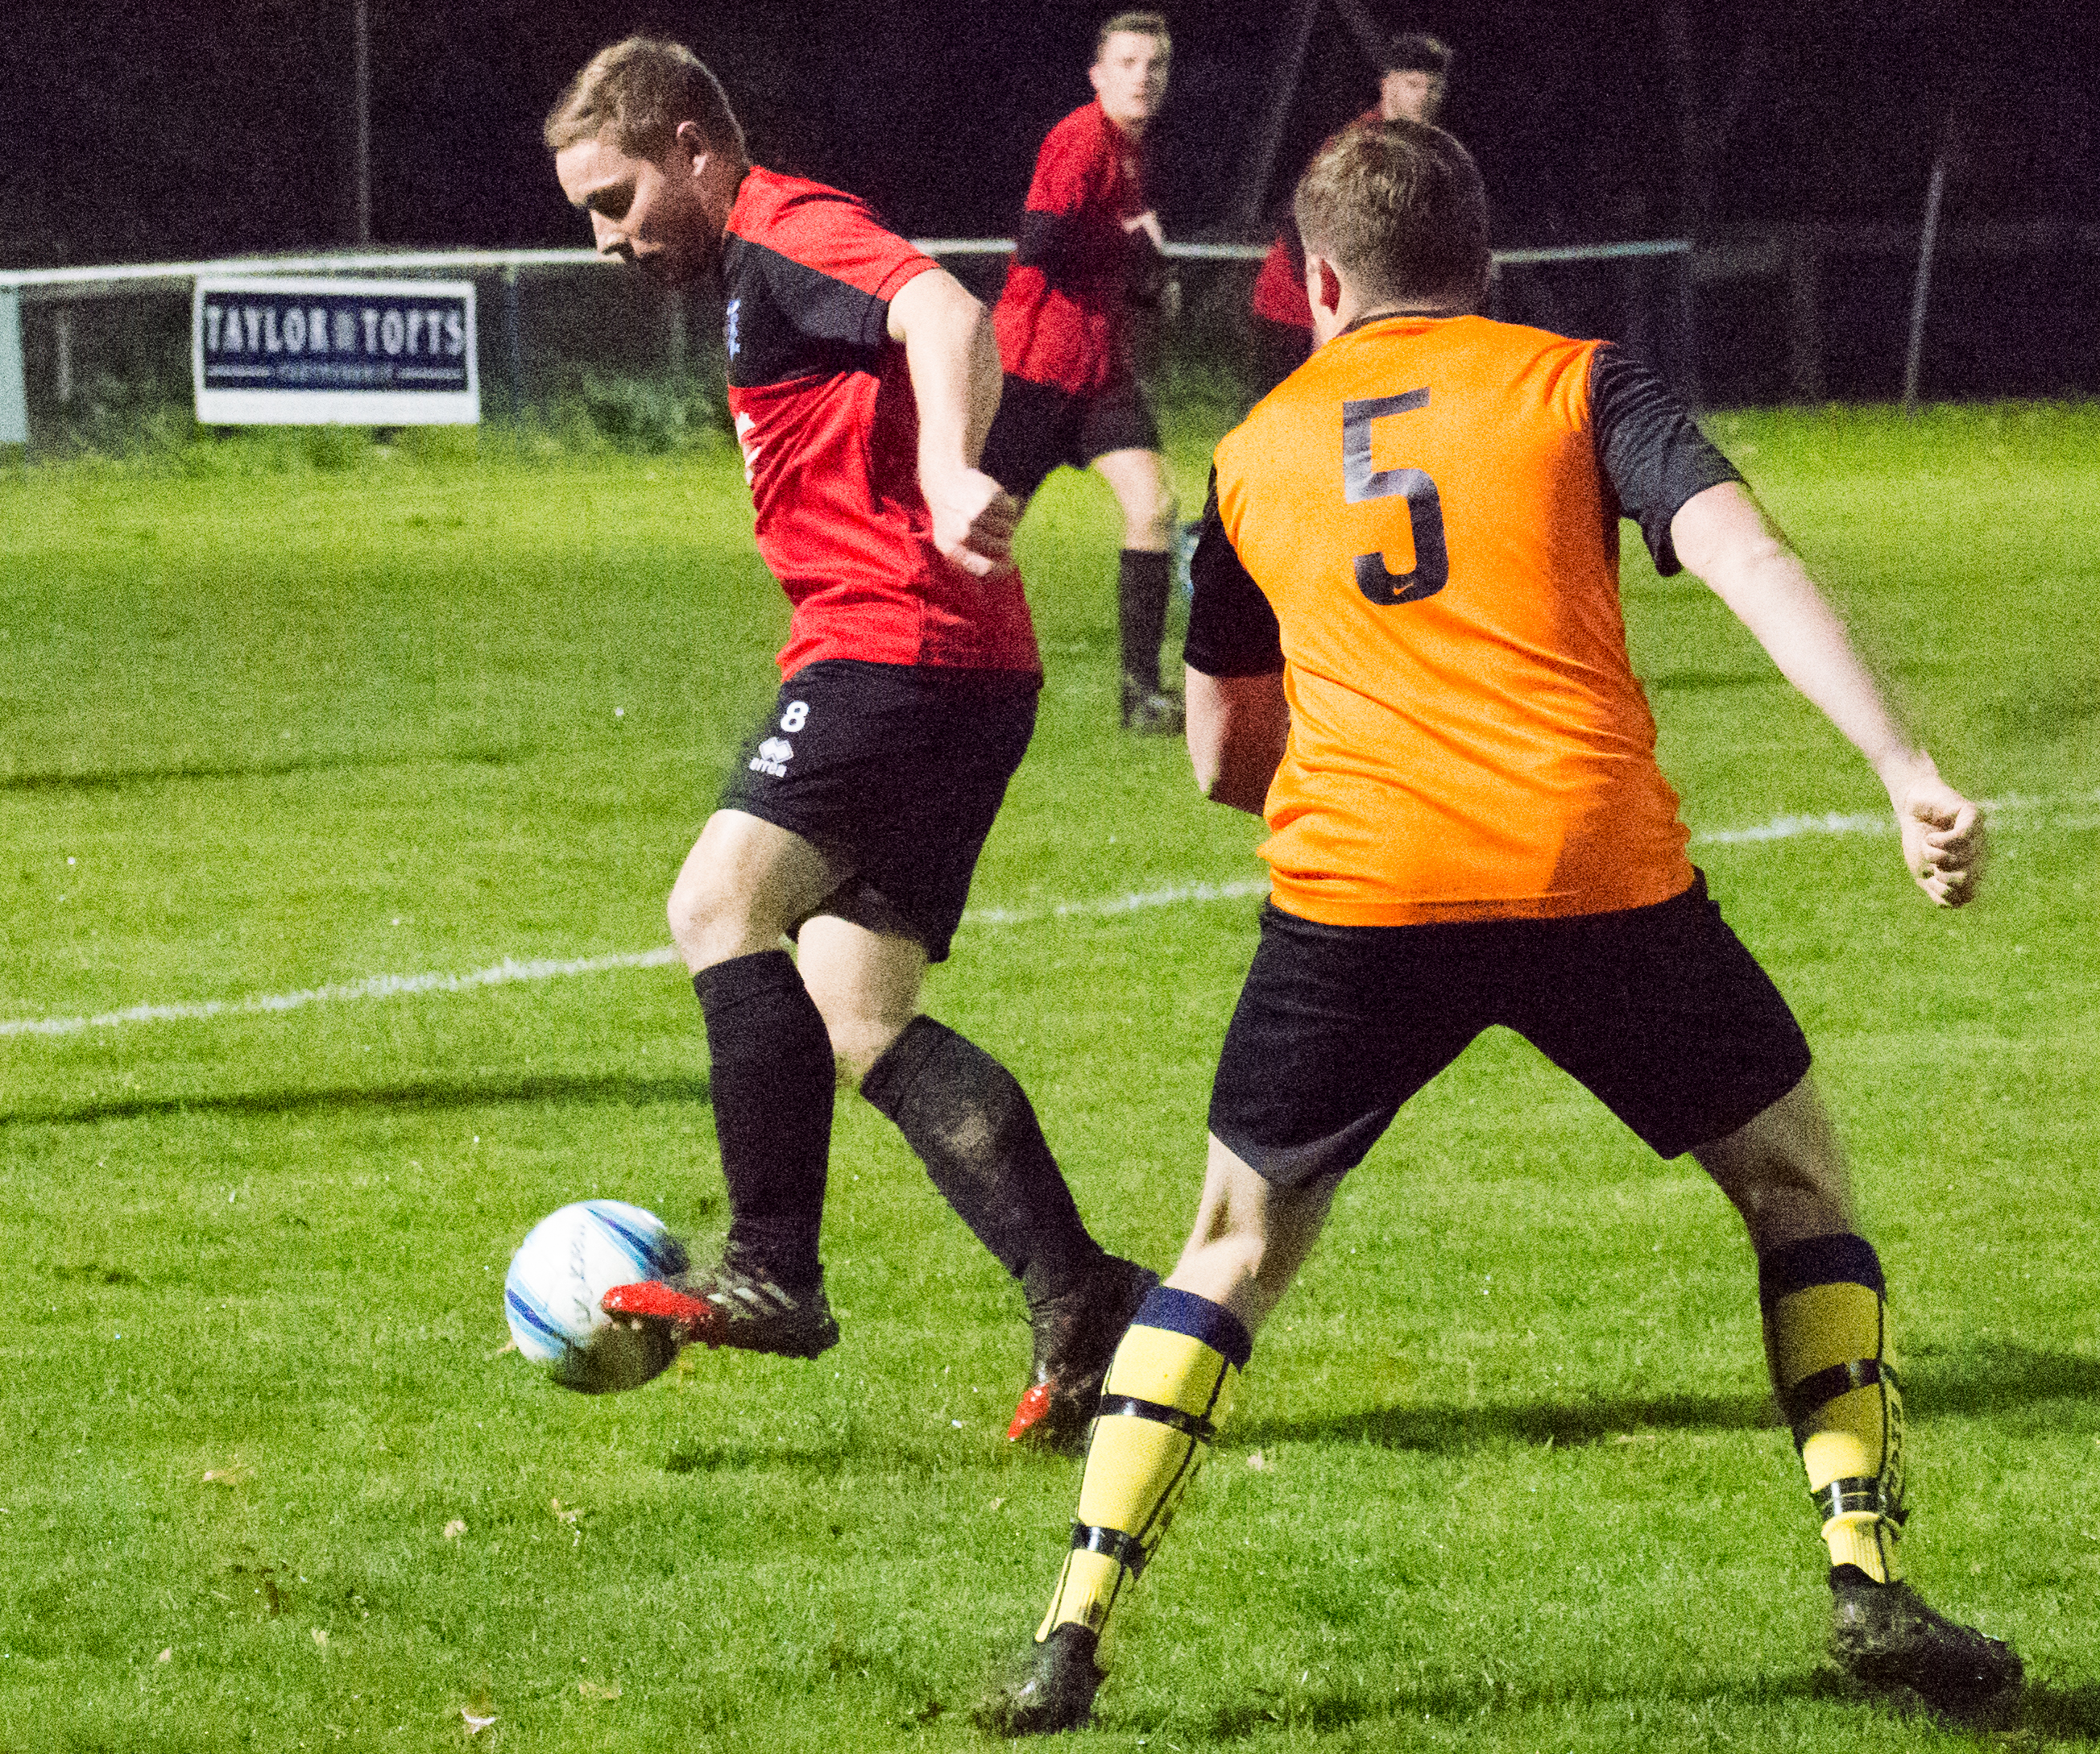 Mile Oak U21s vs Uckfield U21s 02.11.17 02